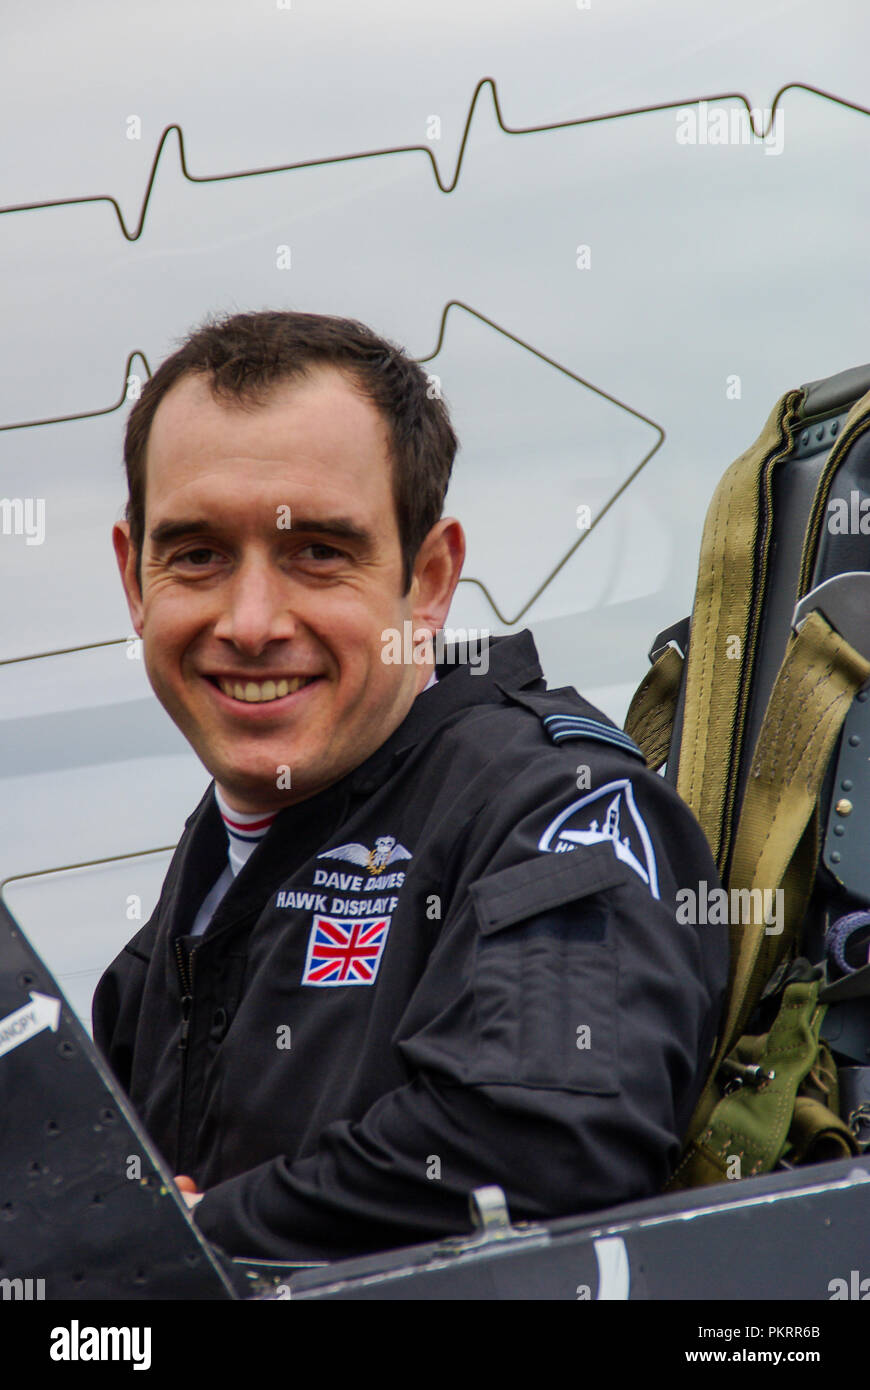 Dave Davies, Royal Air Force RAF BAe Hawk solo display pilot in cockpit of jet plane. Canopy explosive cord for emergency ejection. Seat - Stock Image